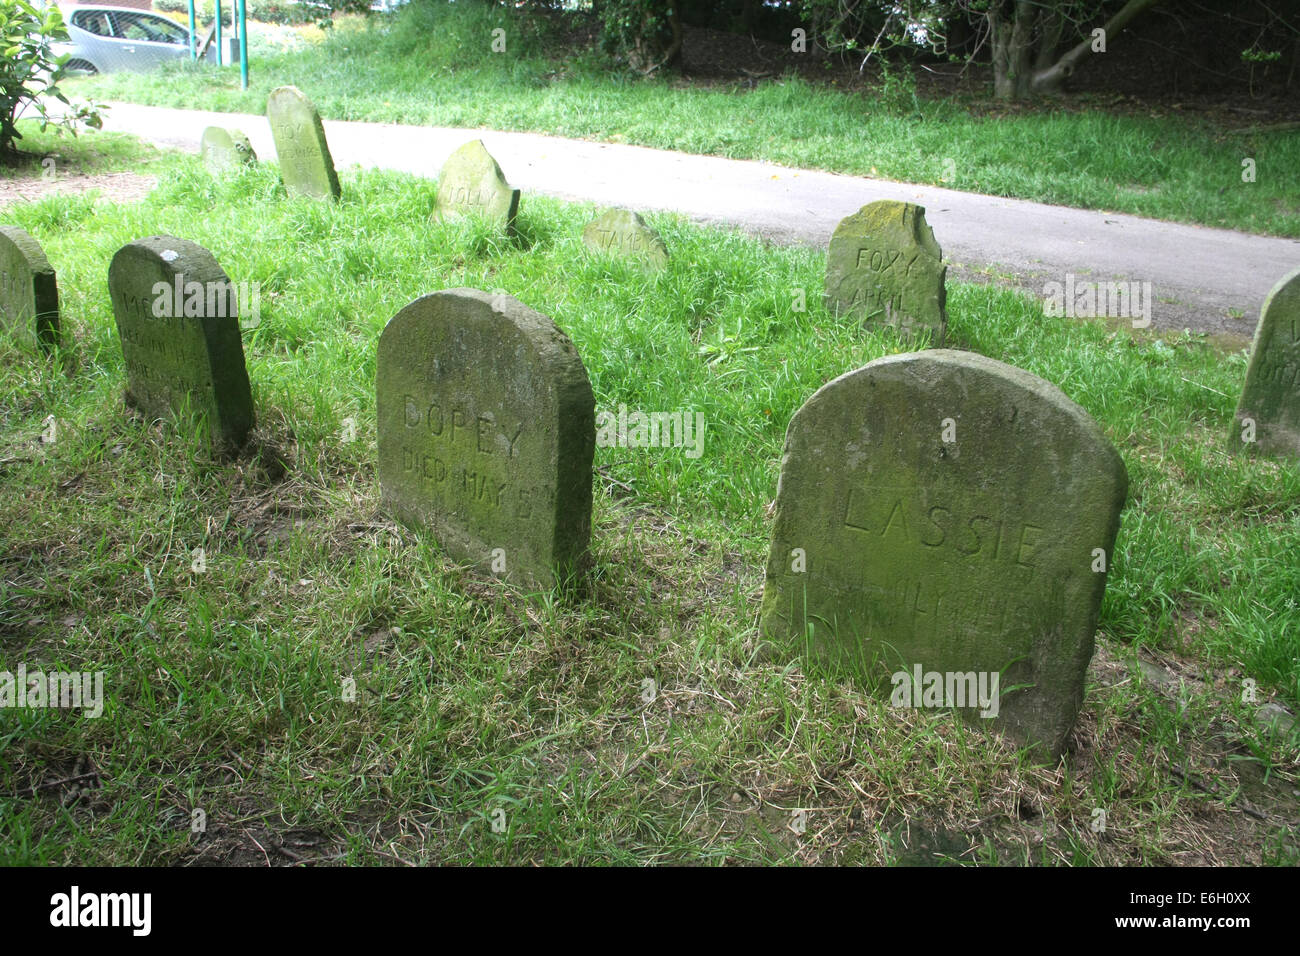 Dog graves in a Swansea park, South Wales, UK - Stock Image